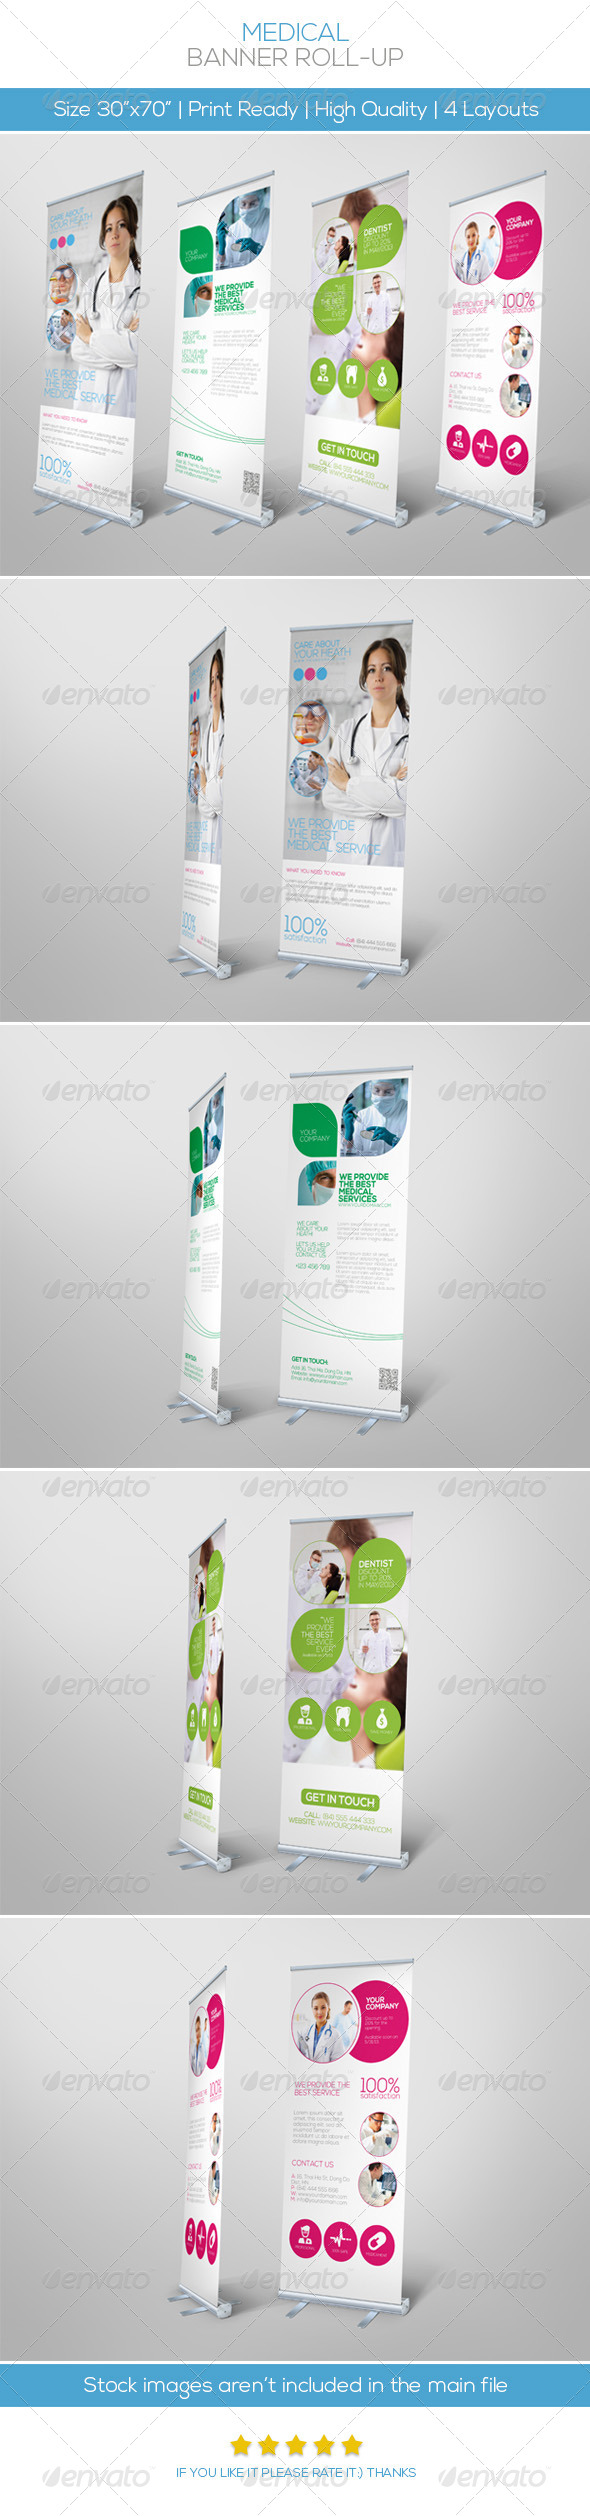 GraphicRiver Premium Medical Roll-up Banner 4919225